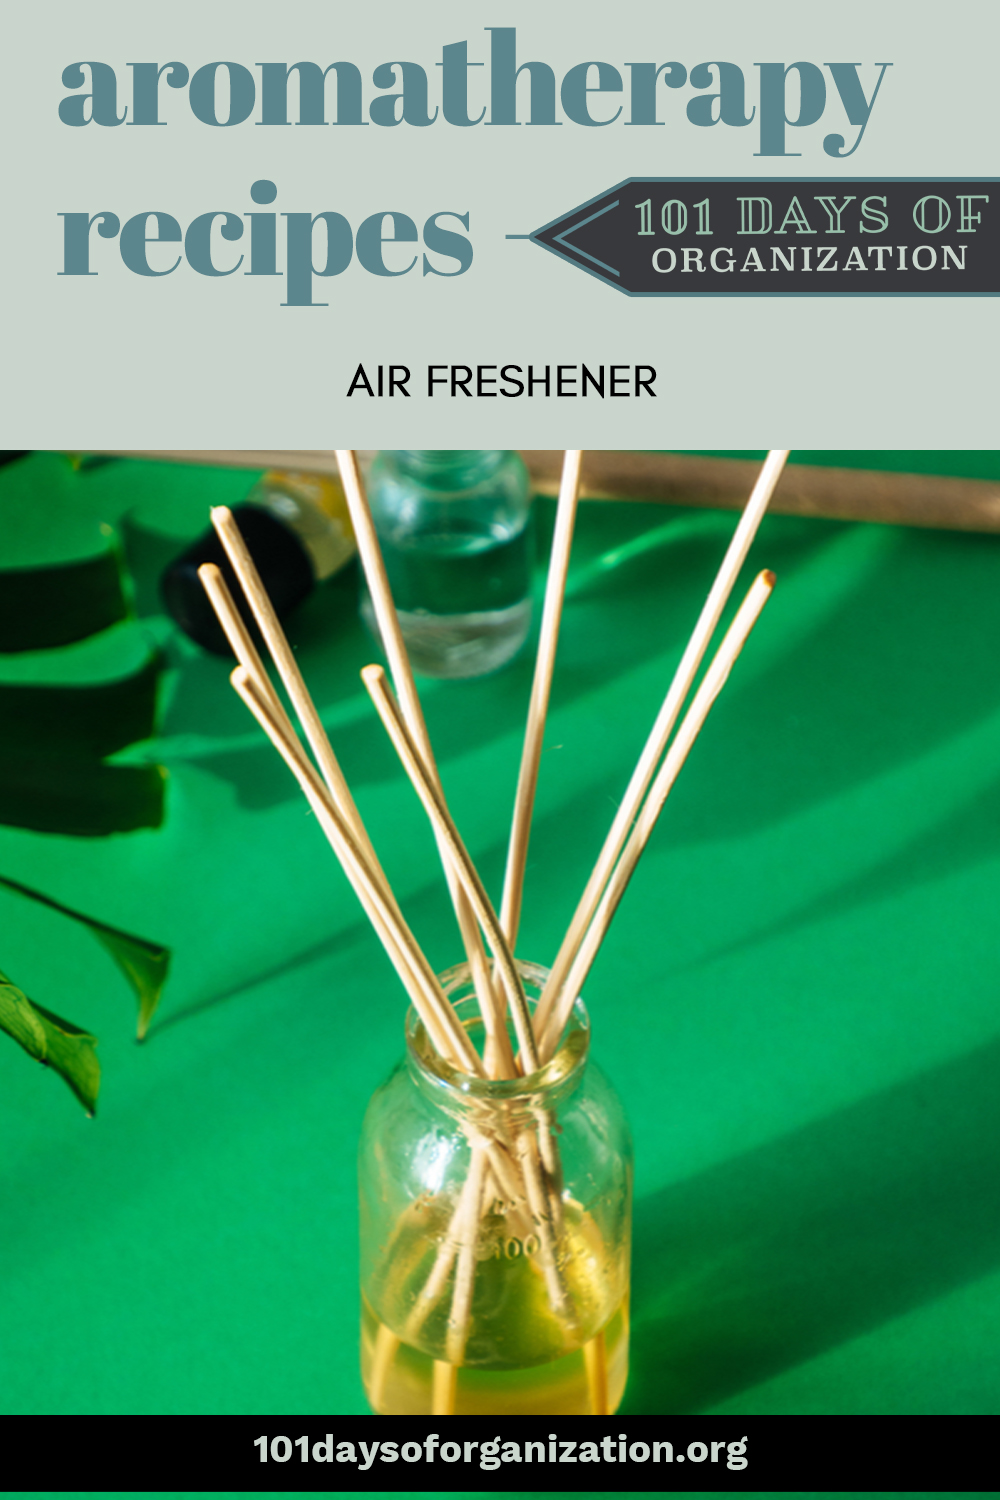 Aromatherapy recipes to give you air freshening power all year long. Different seasons call for different scents. Learn which oils fit best with each season! #101daysoforganizationblog #aromatherapyrecipesairfreshener